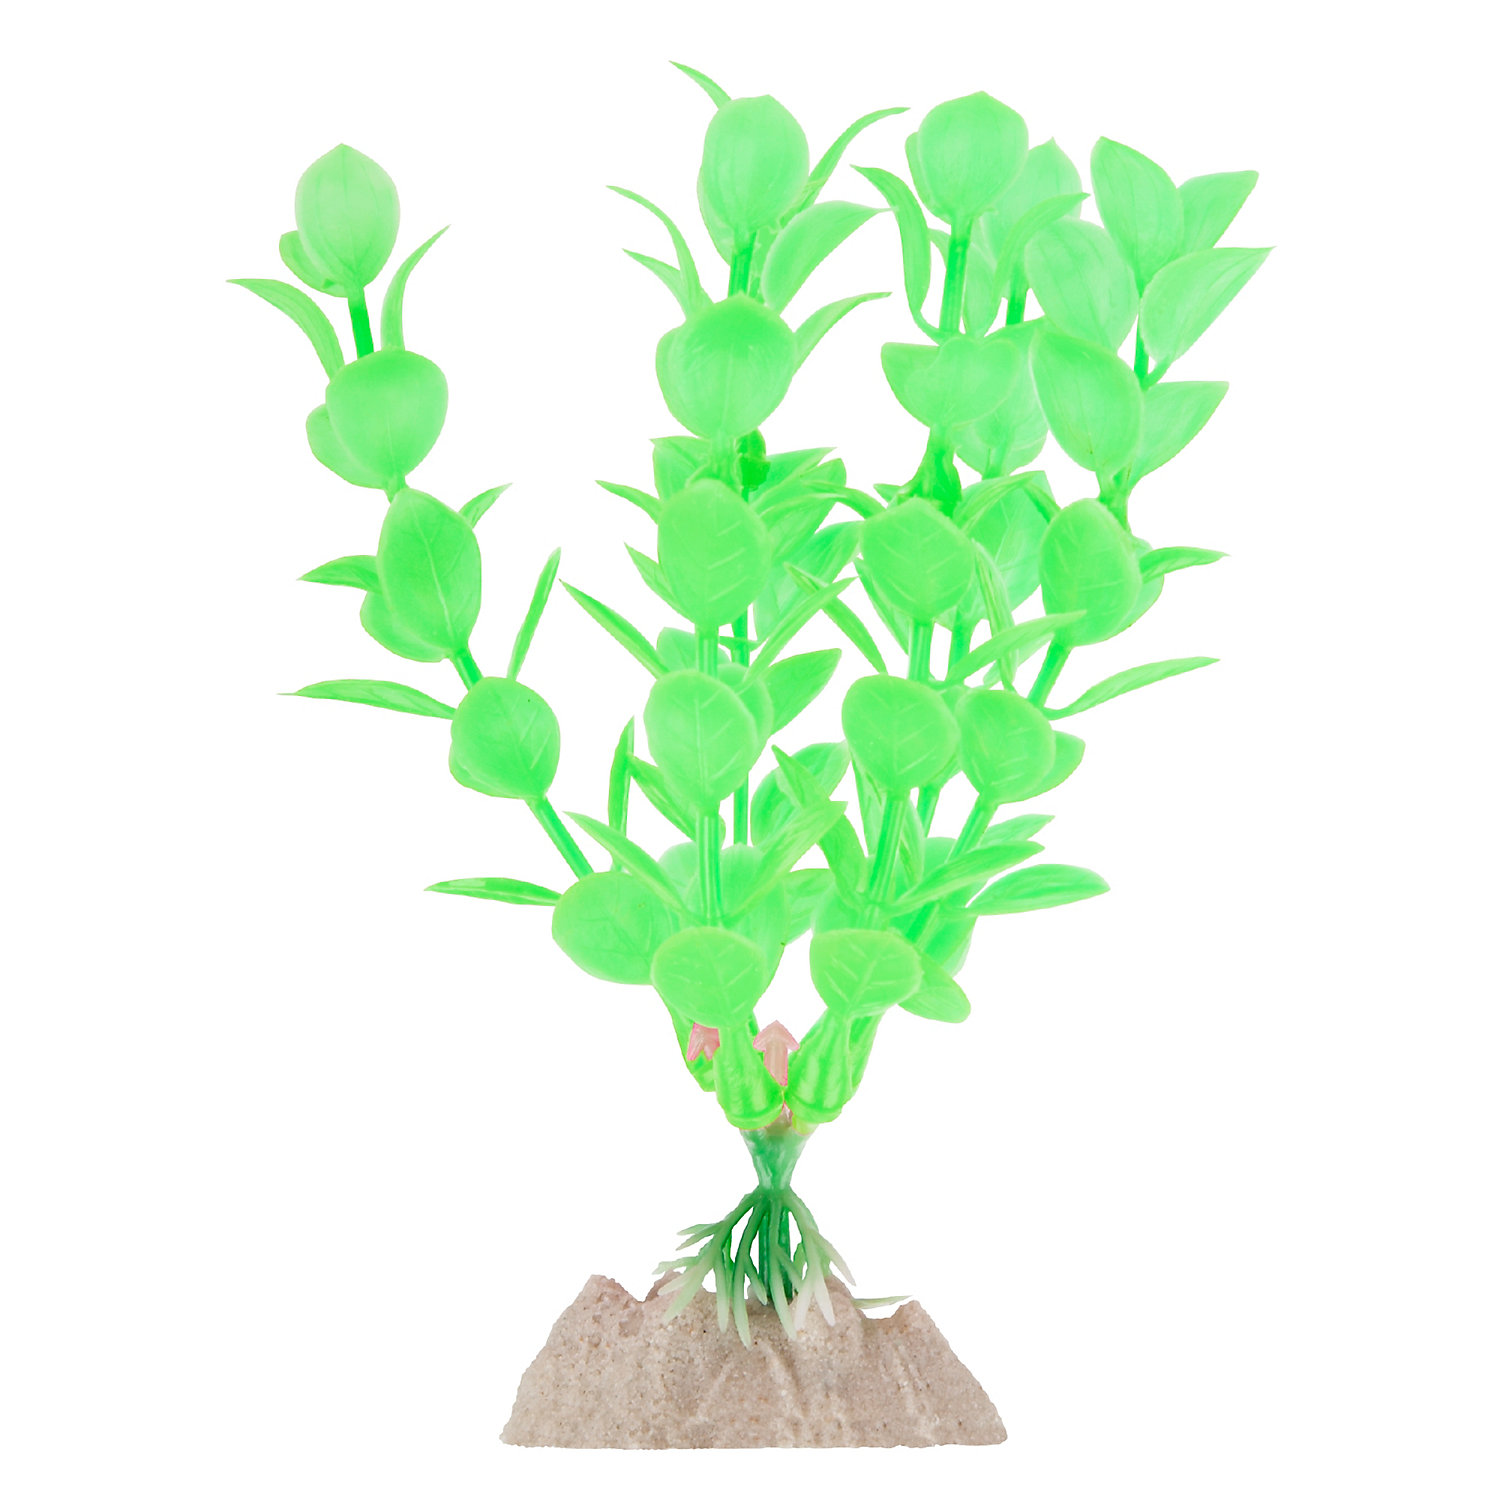 Glofish Small Green Aquarium Plant